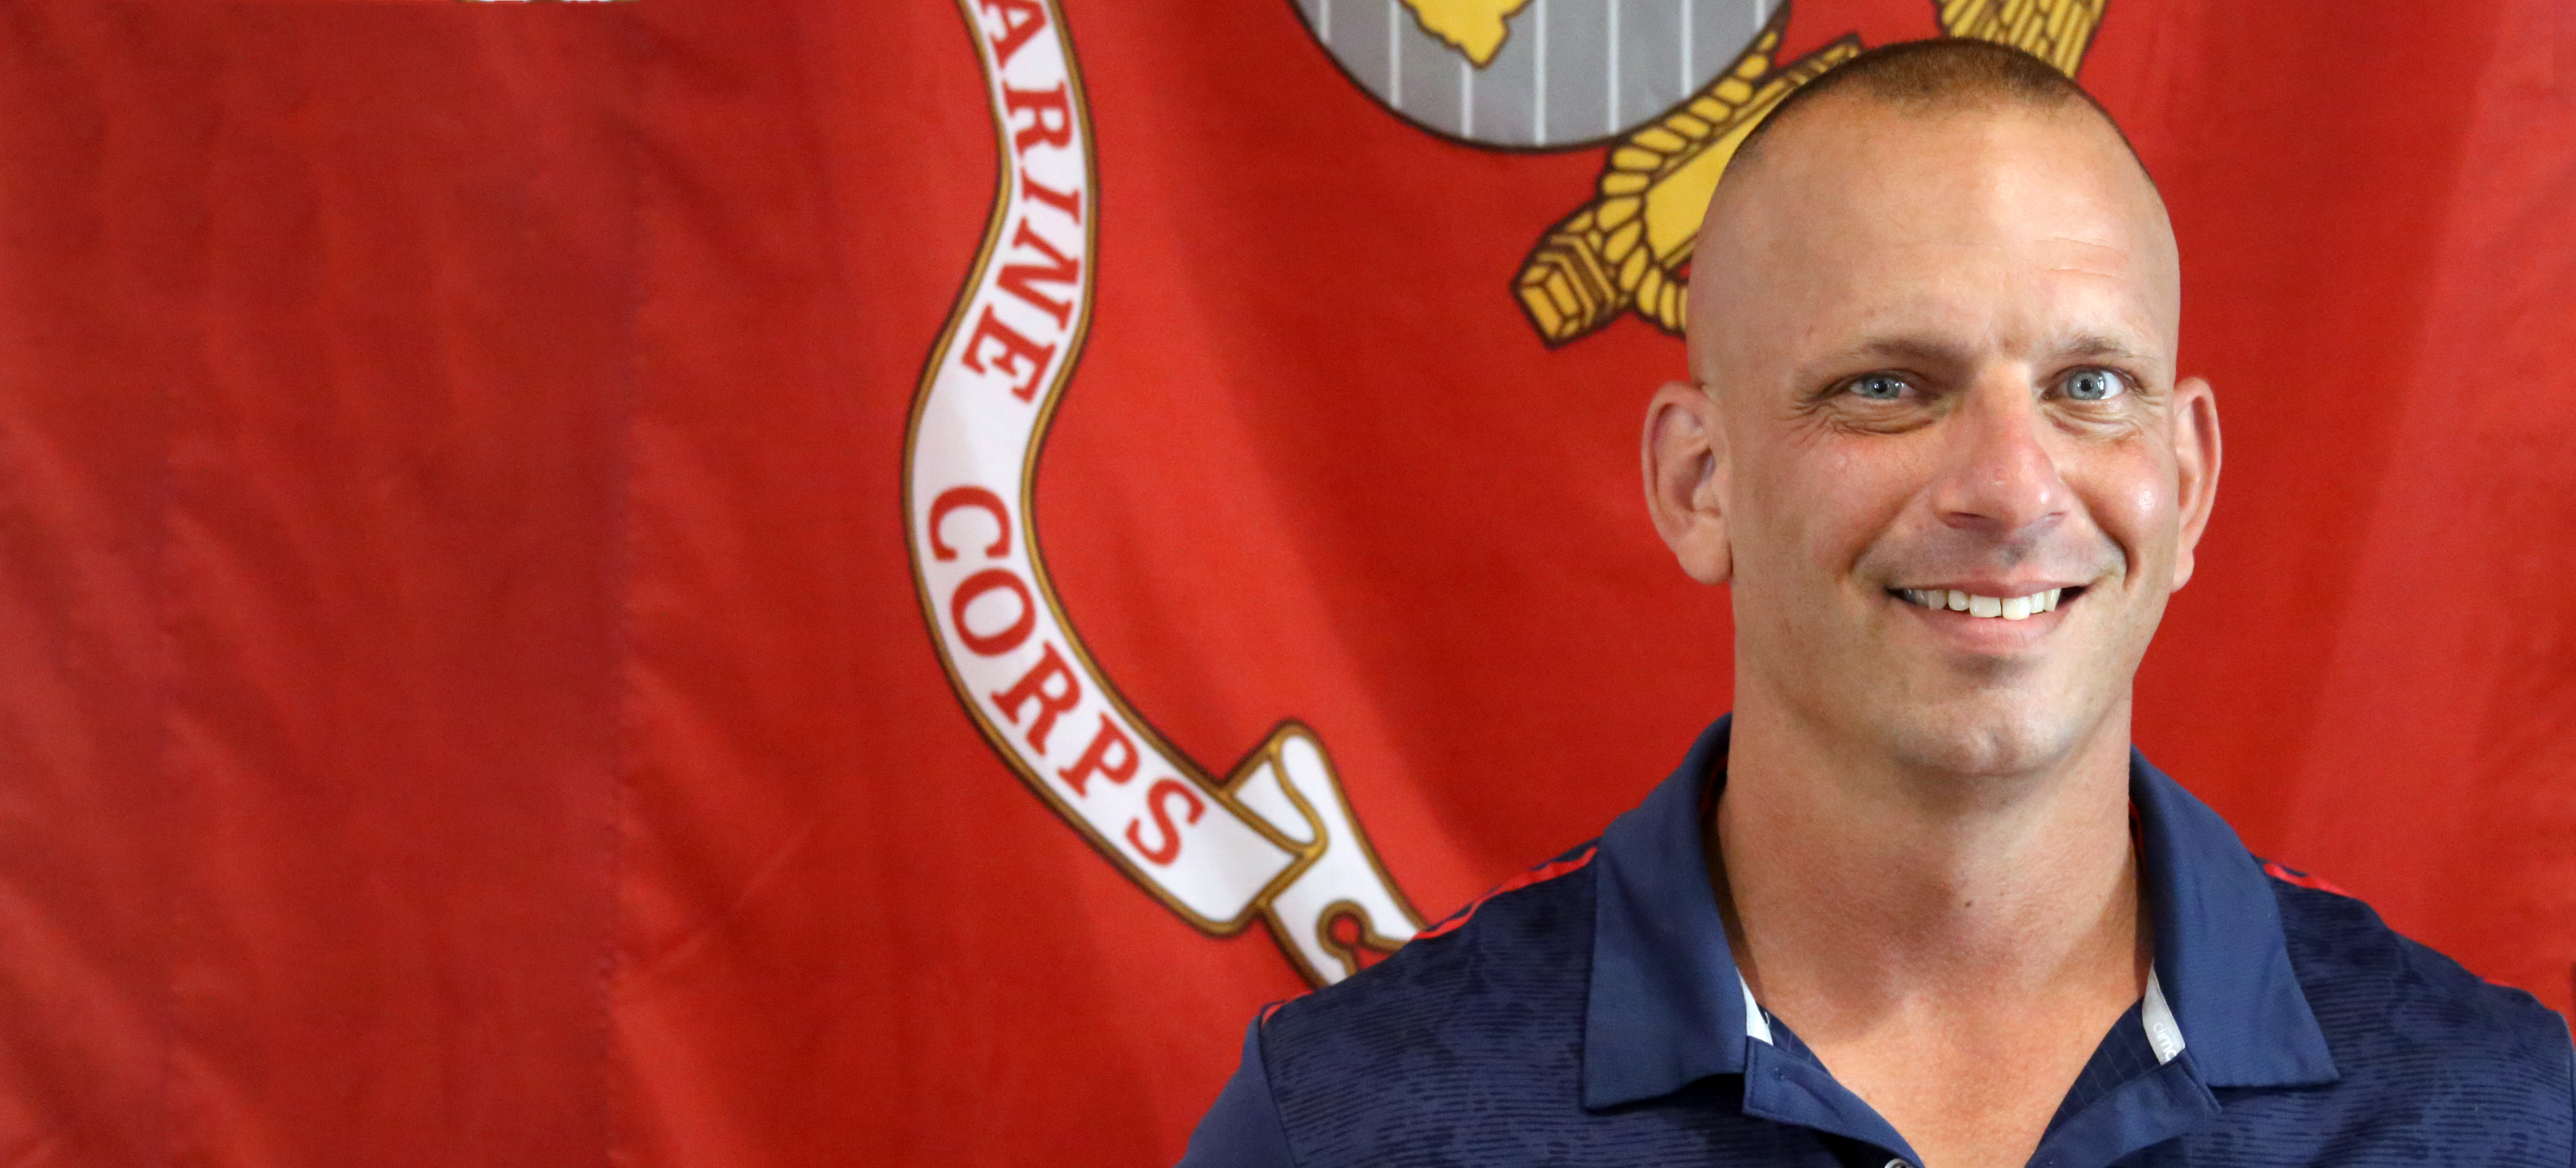 Bill Allen, retired Marine, is a stand-out student in the classroom at WSCC.